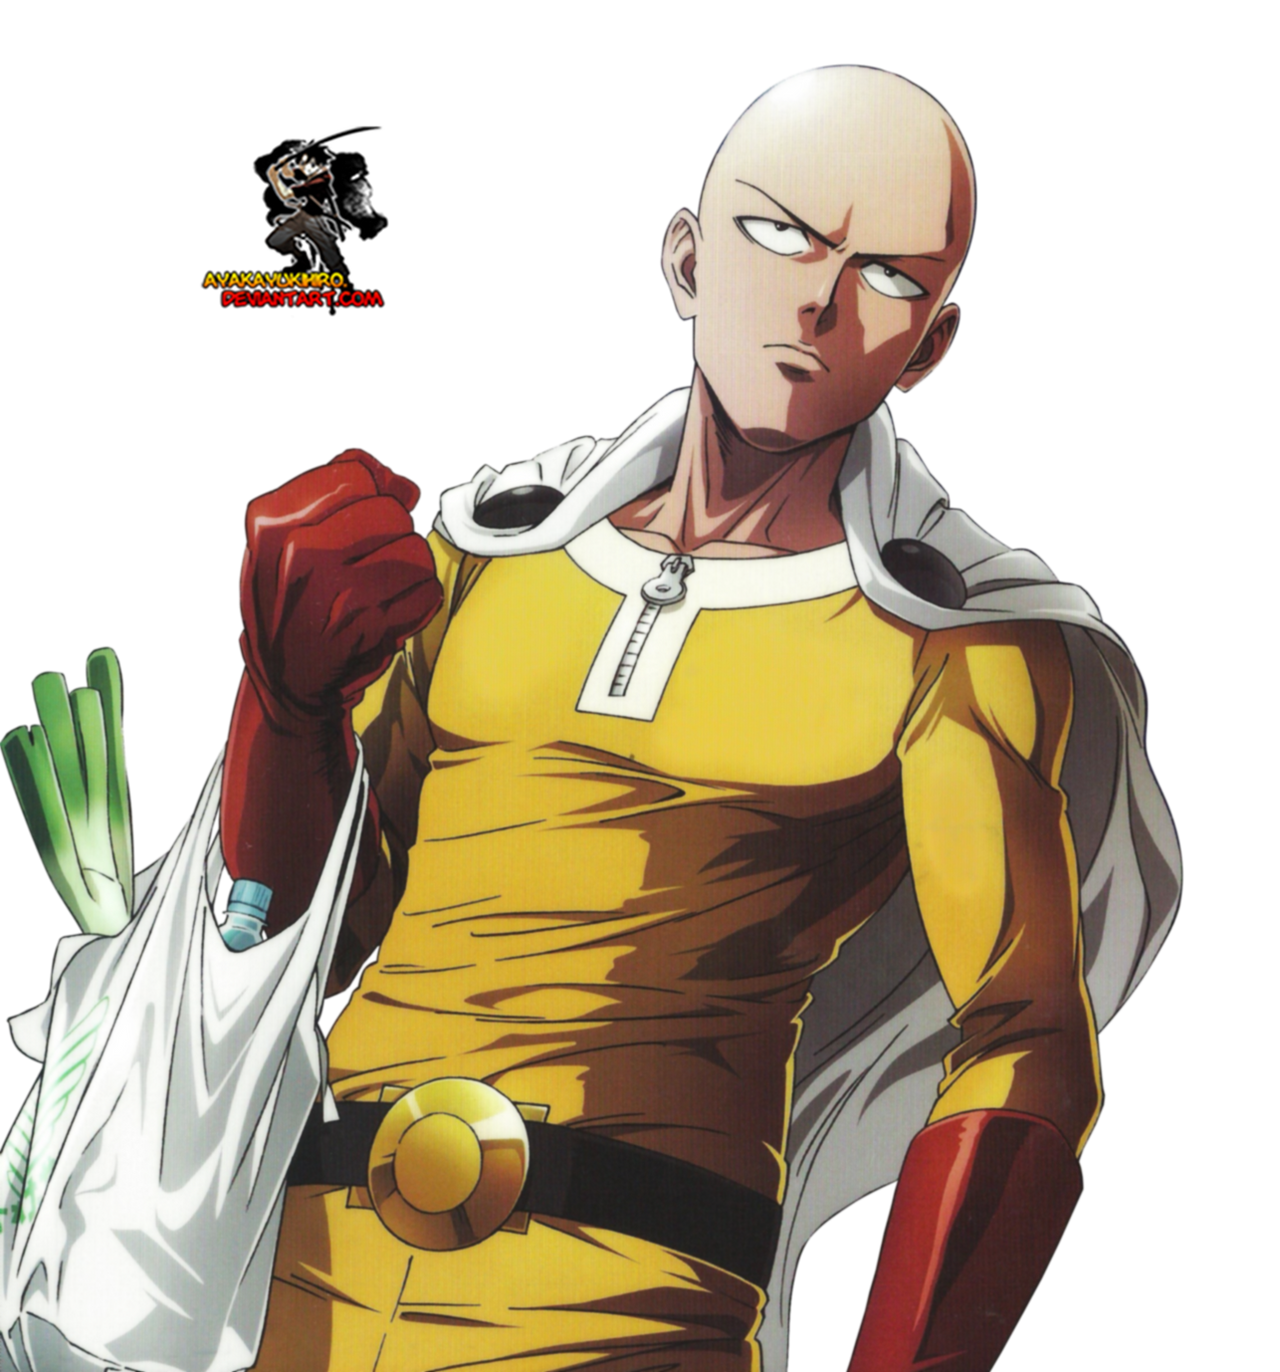 661649.png (2431×2160) One Punch Man Reference